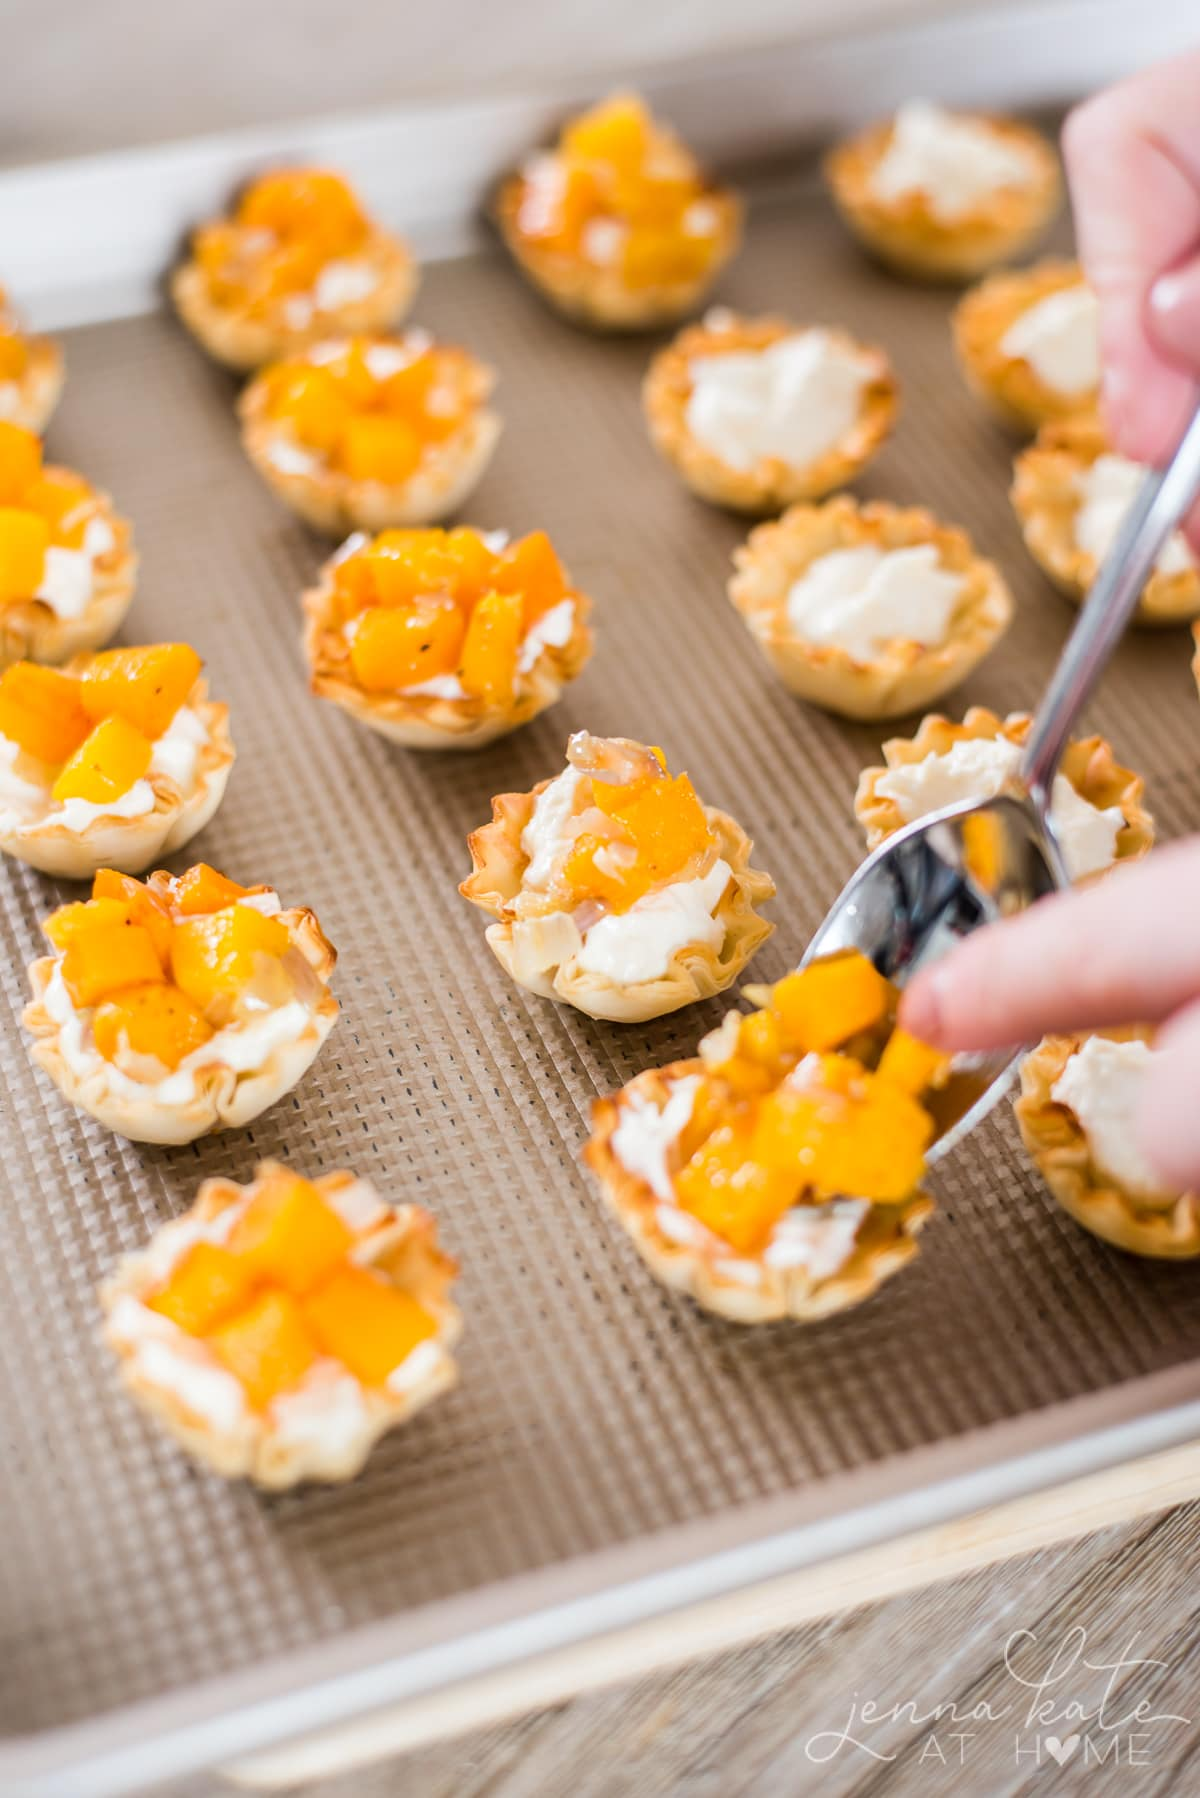 Easy holiday appetizer made from butternut squash